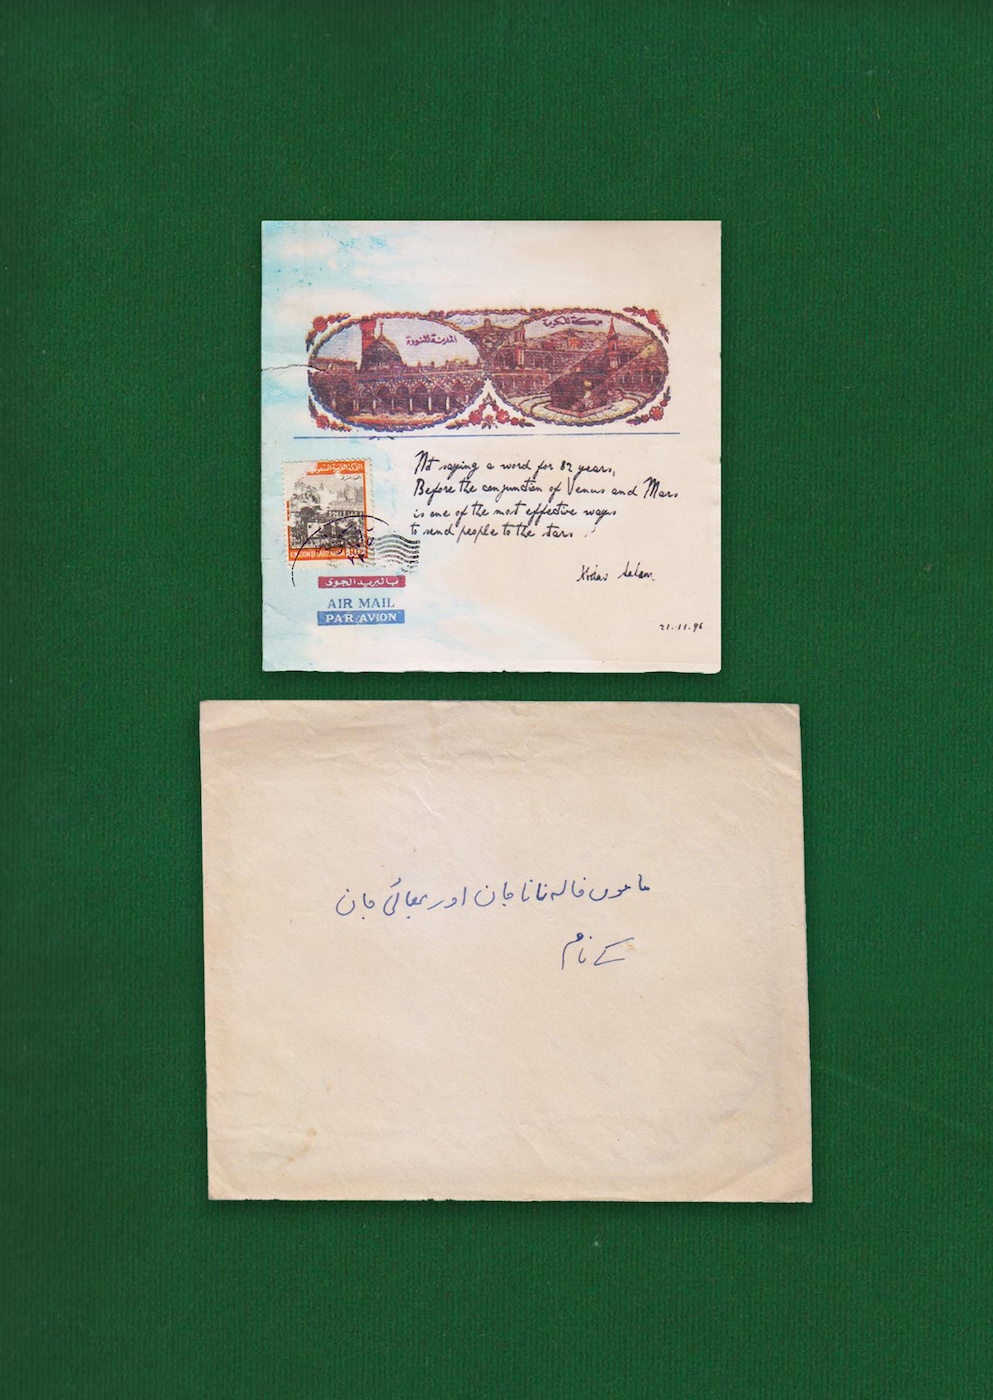 Mehreen Murtaza  Telegram from the Future, Letter from Medina 2013 Cream colored cotton paper, rubber stamps, postage stamp, quill ink, accompanying envelope, green velvet mount 36.61 x 45.09 x 3.91 cm (framed), 12.7 x 12.7 cm (cotton paper) and 13.97 x 15.24 cm (envelope)